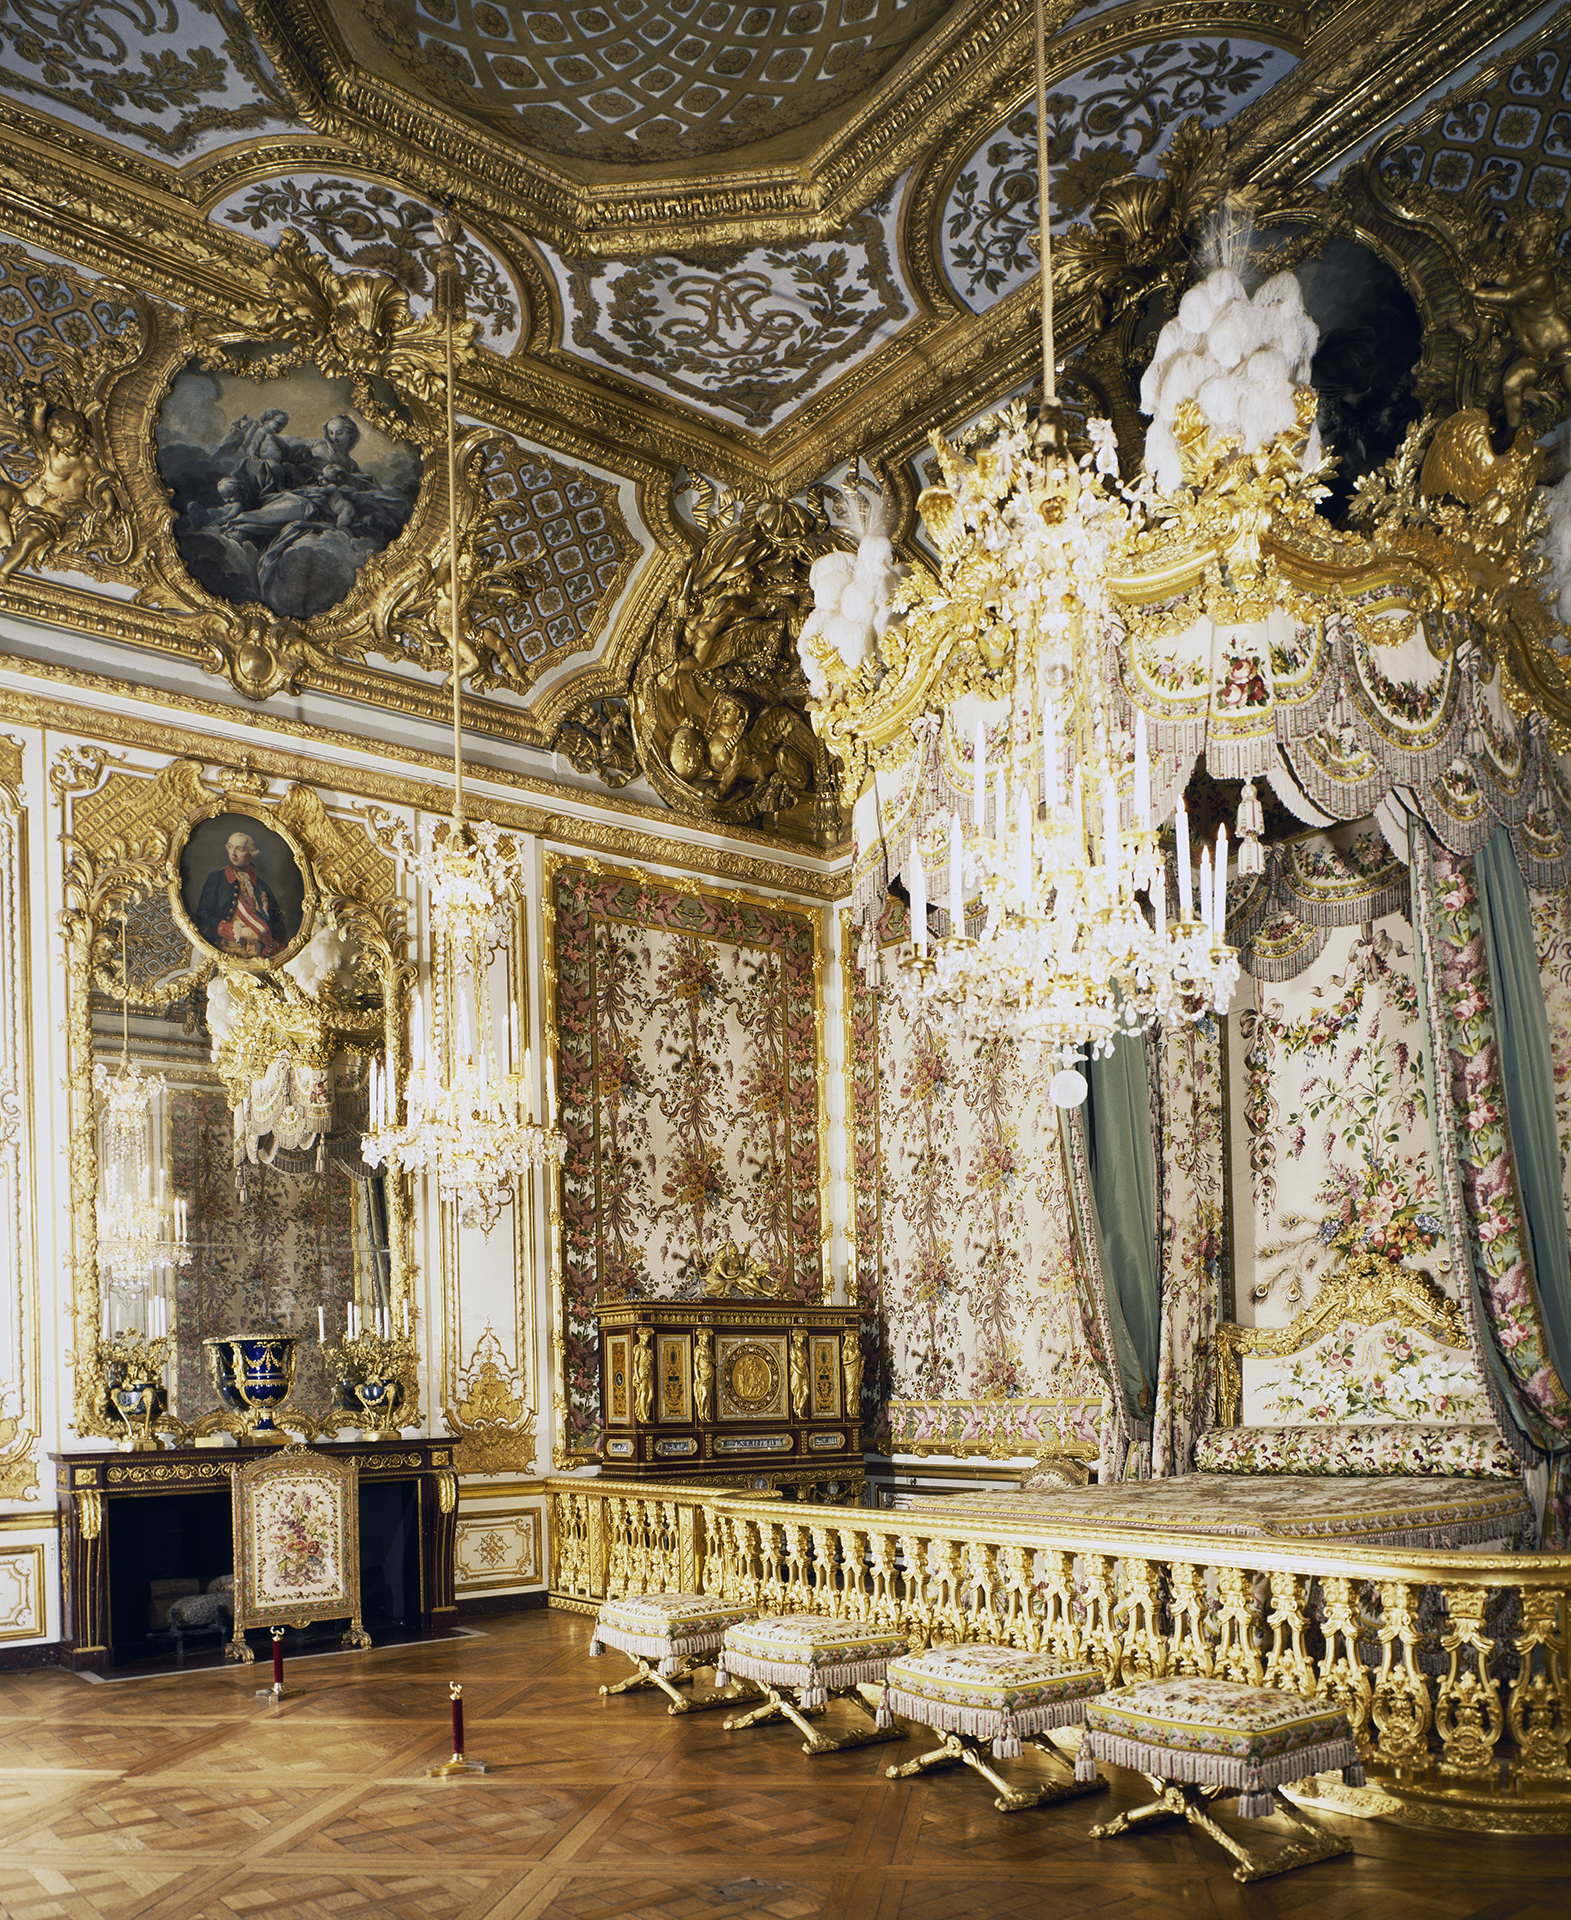 The queen's room in the Palace of Versailles. (Credit: DeAgostini/Getty Images)